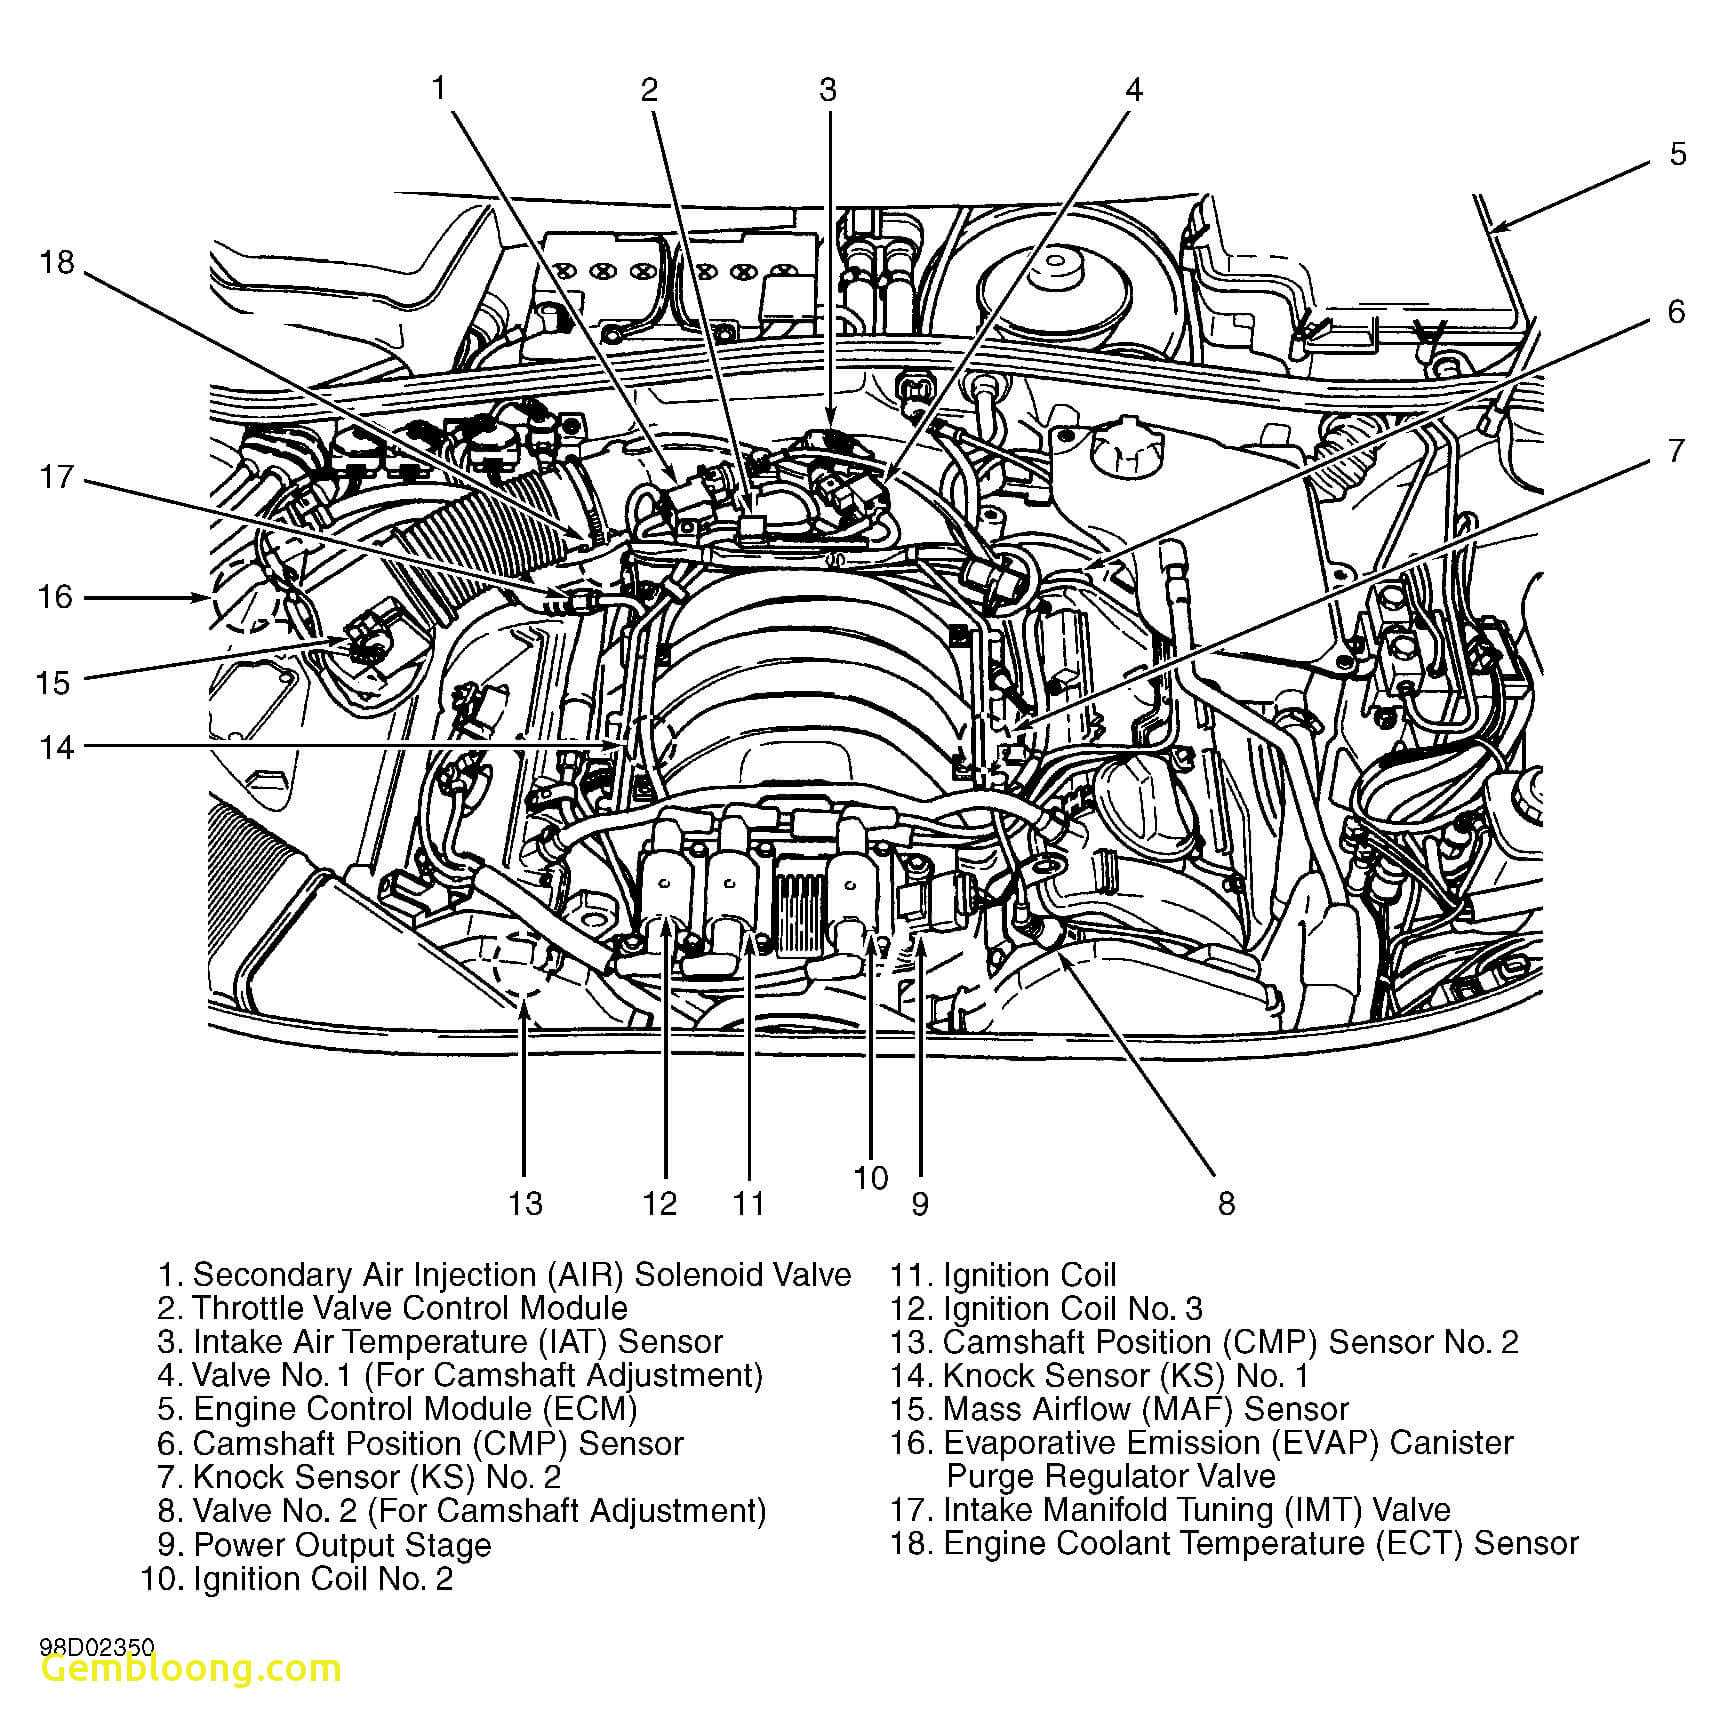 2011 Chevy Hhr Engine Diagram | Wiring Diagram on